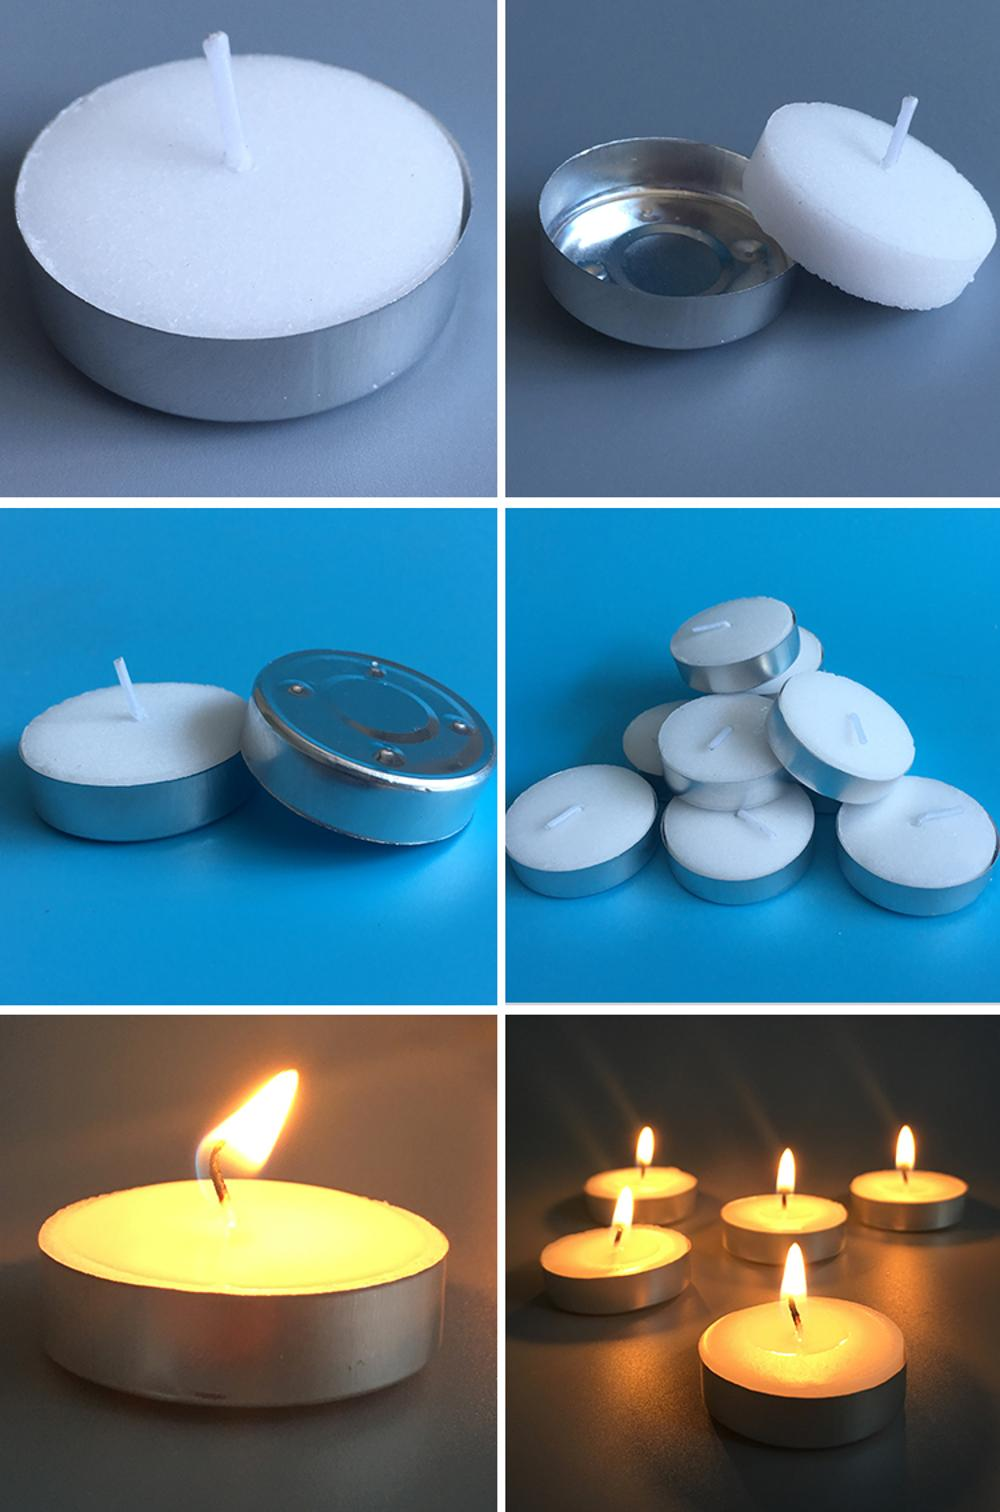 TeaLight Candles in Cups